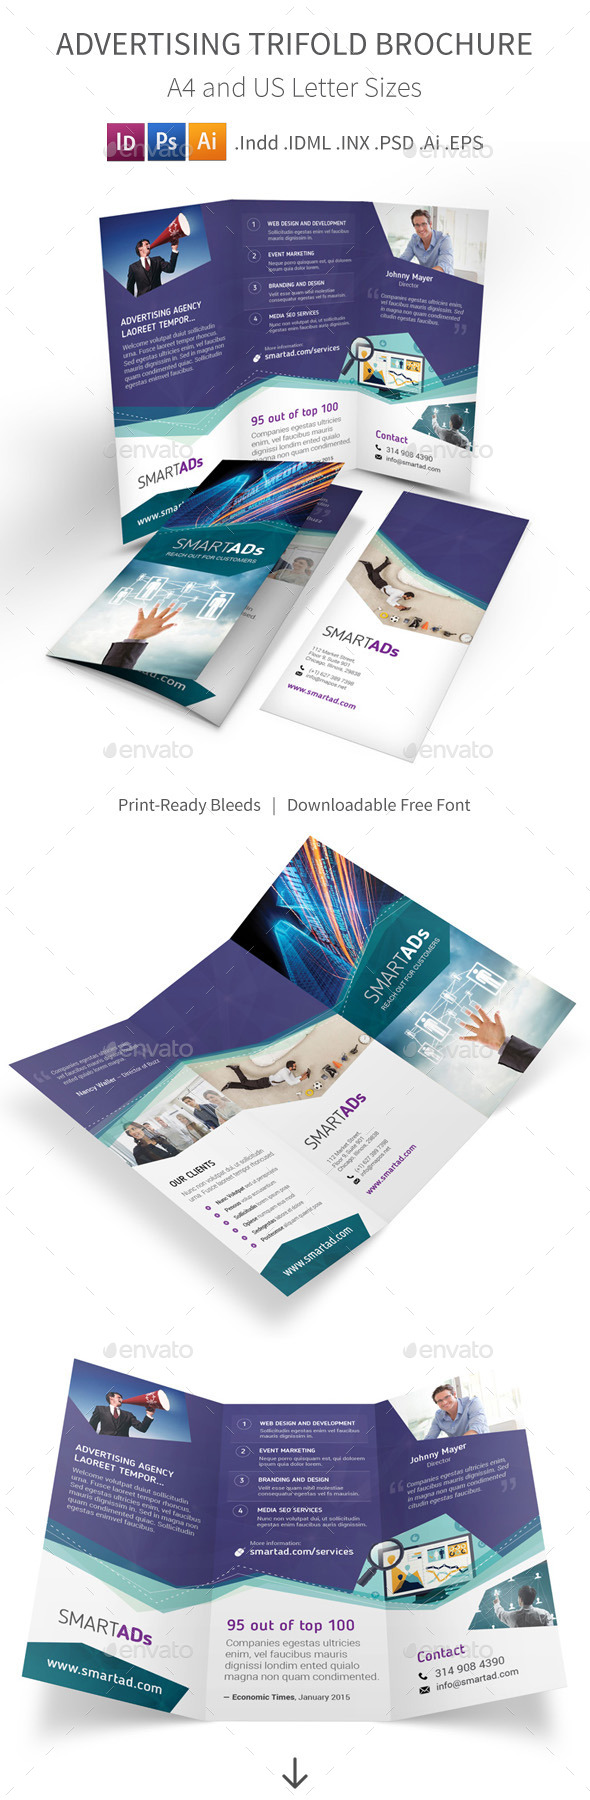 GraphicRiver Advertising Trifold Brochure 10132094